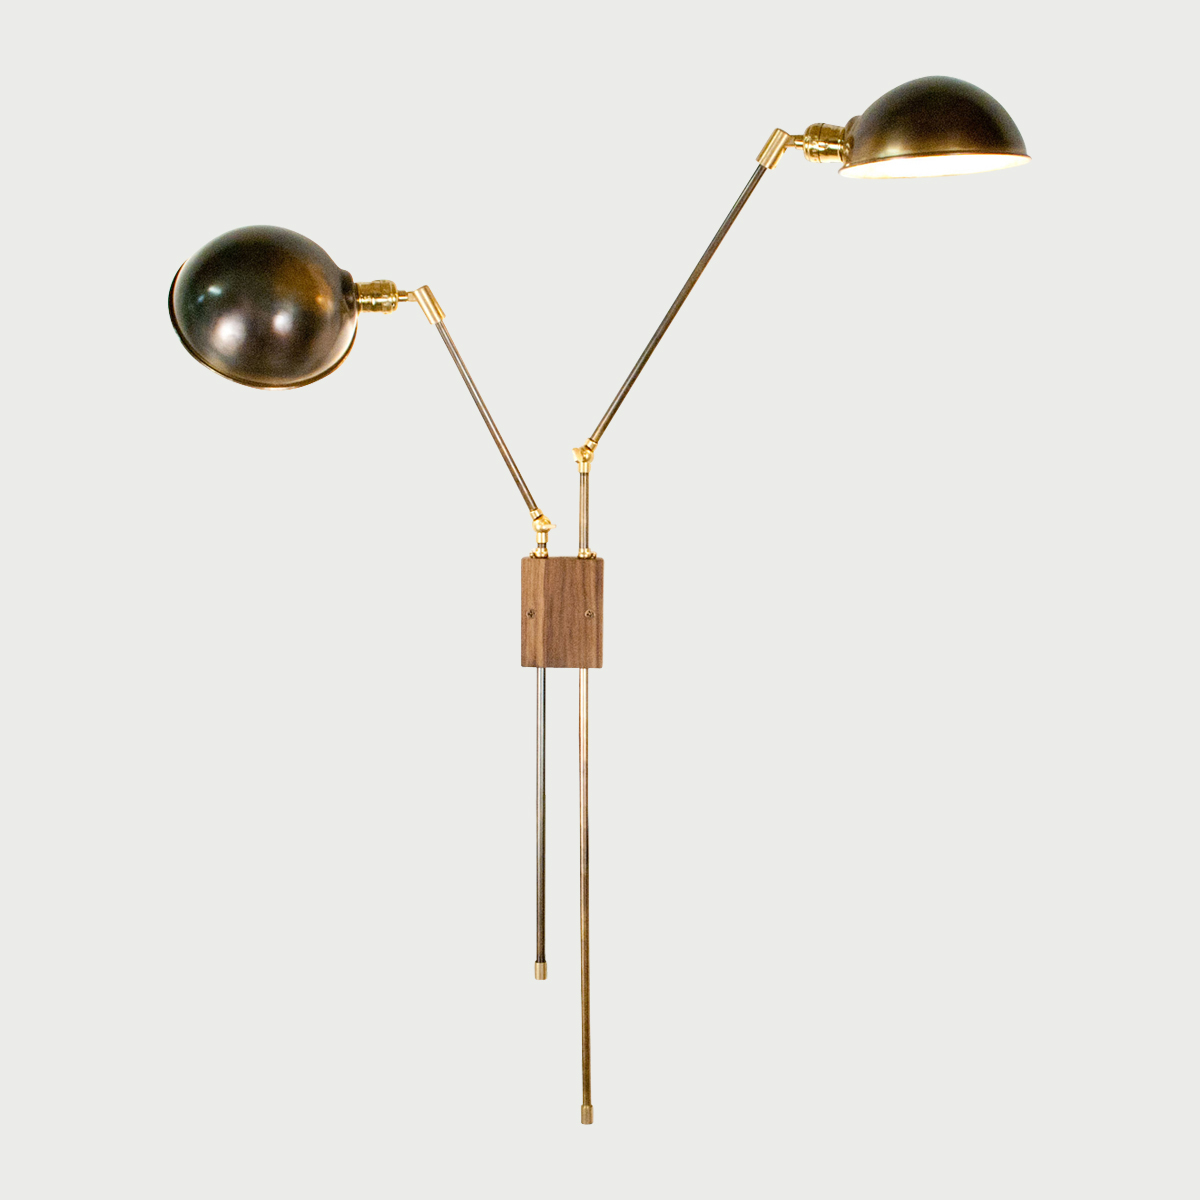 Atlas double arm wall lamp4 copy